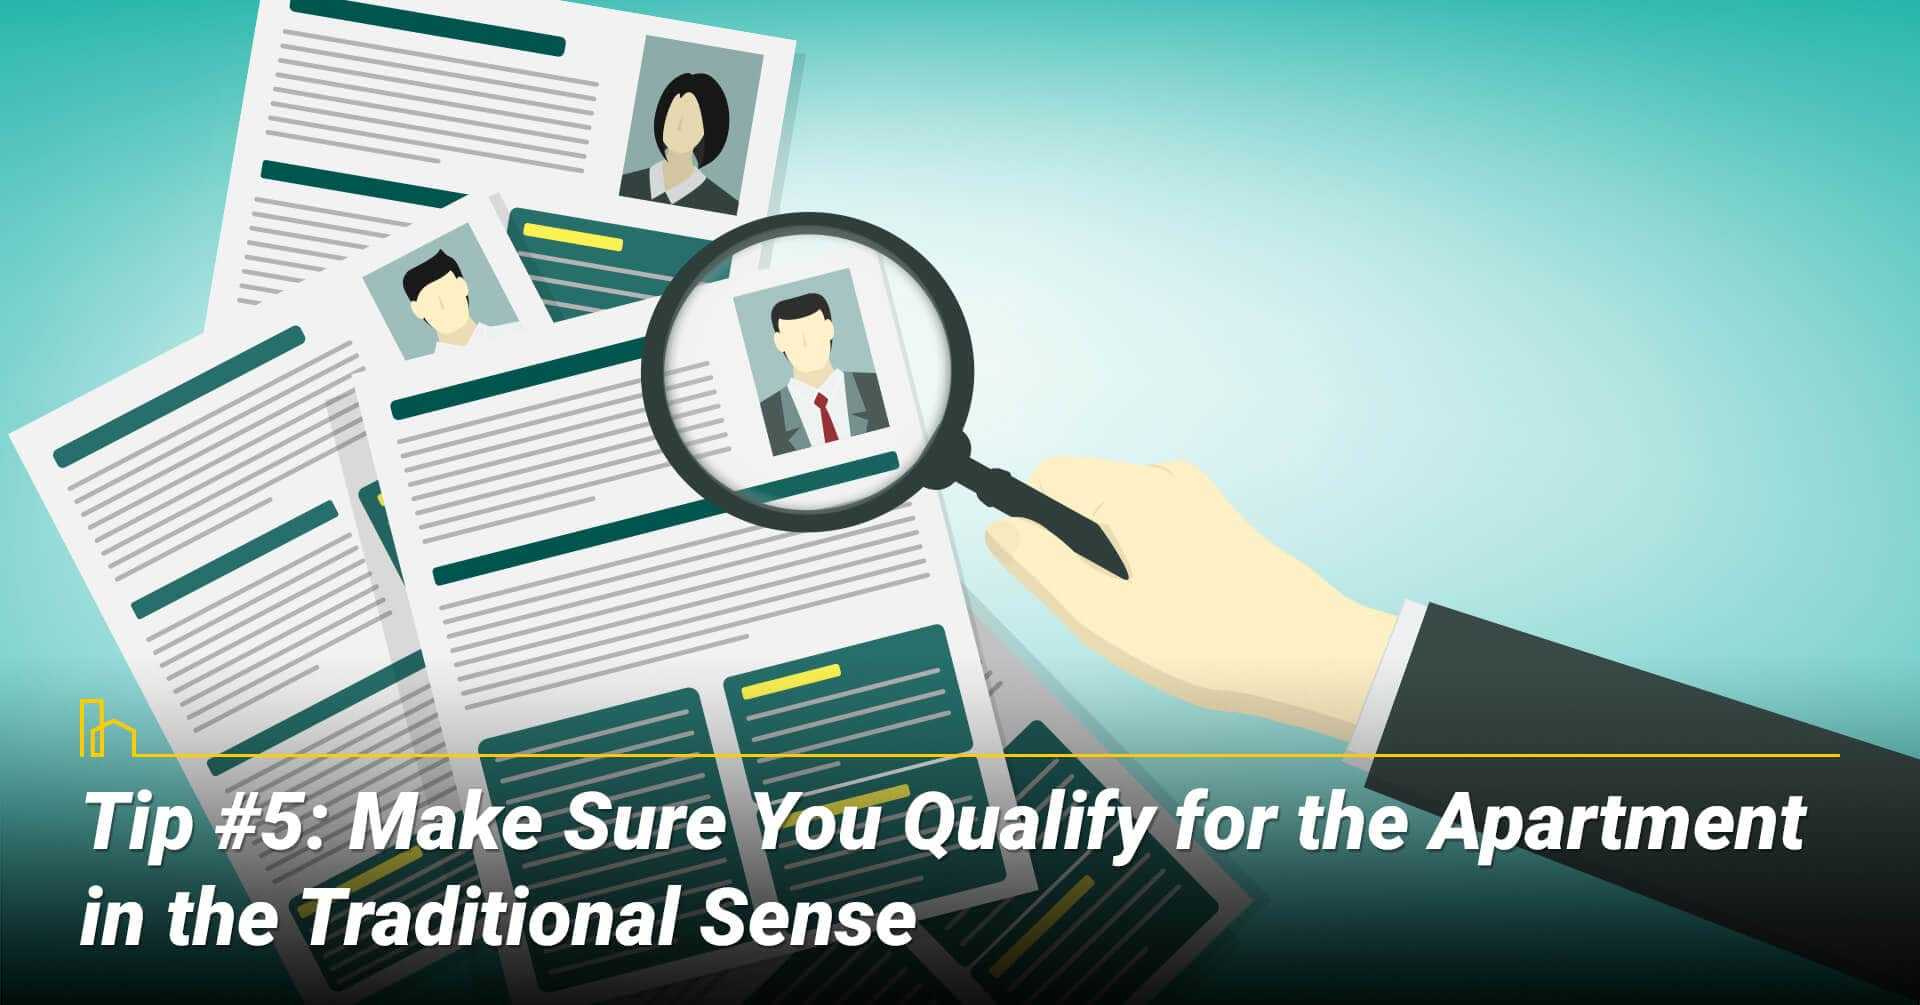 Tip #5: Make Sure You Qualify for the Apartment in the Traditional Sense, make yourself highly qualified